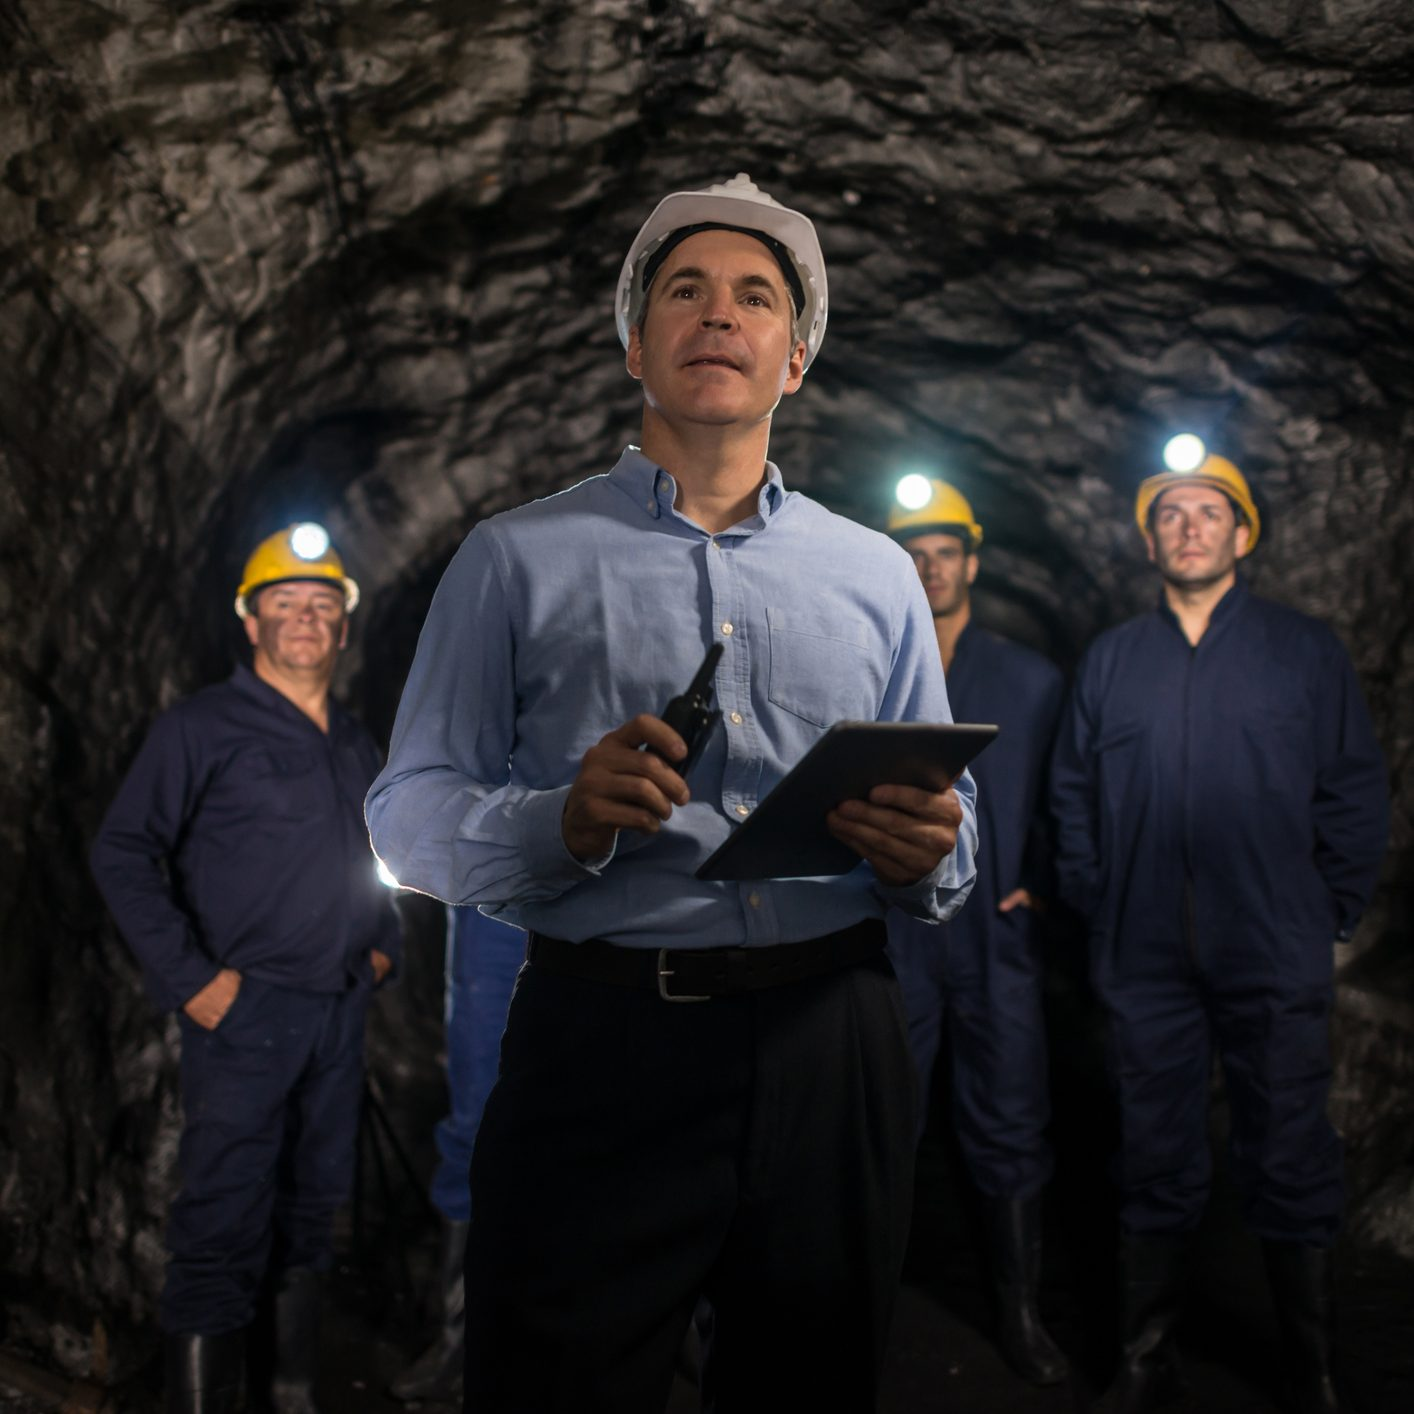 Coal mine inspector checking the safety of a coal mine